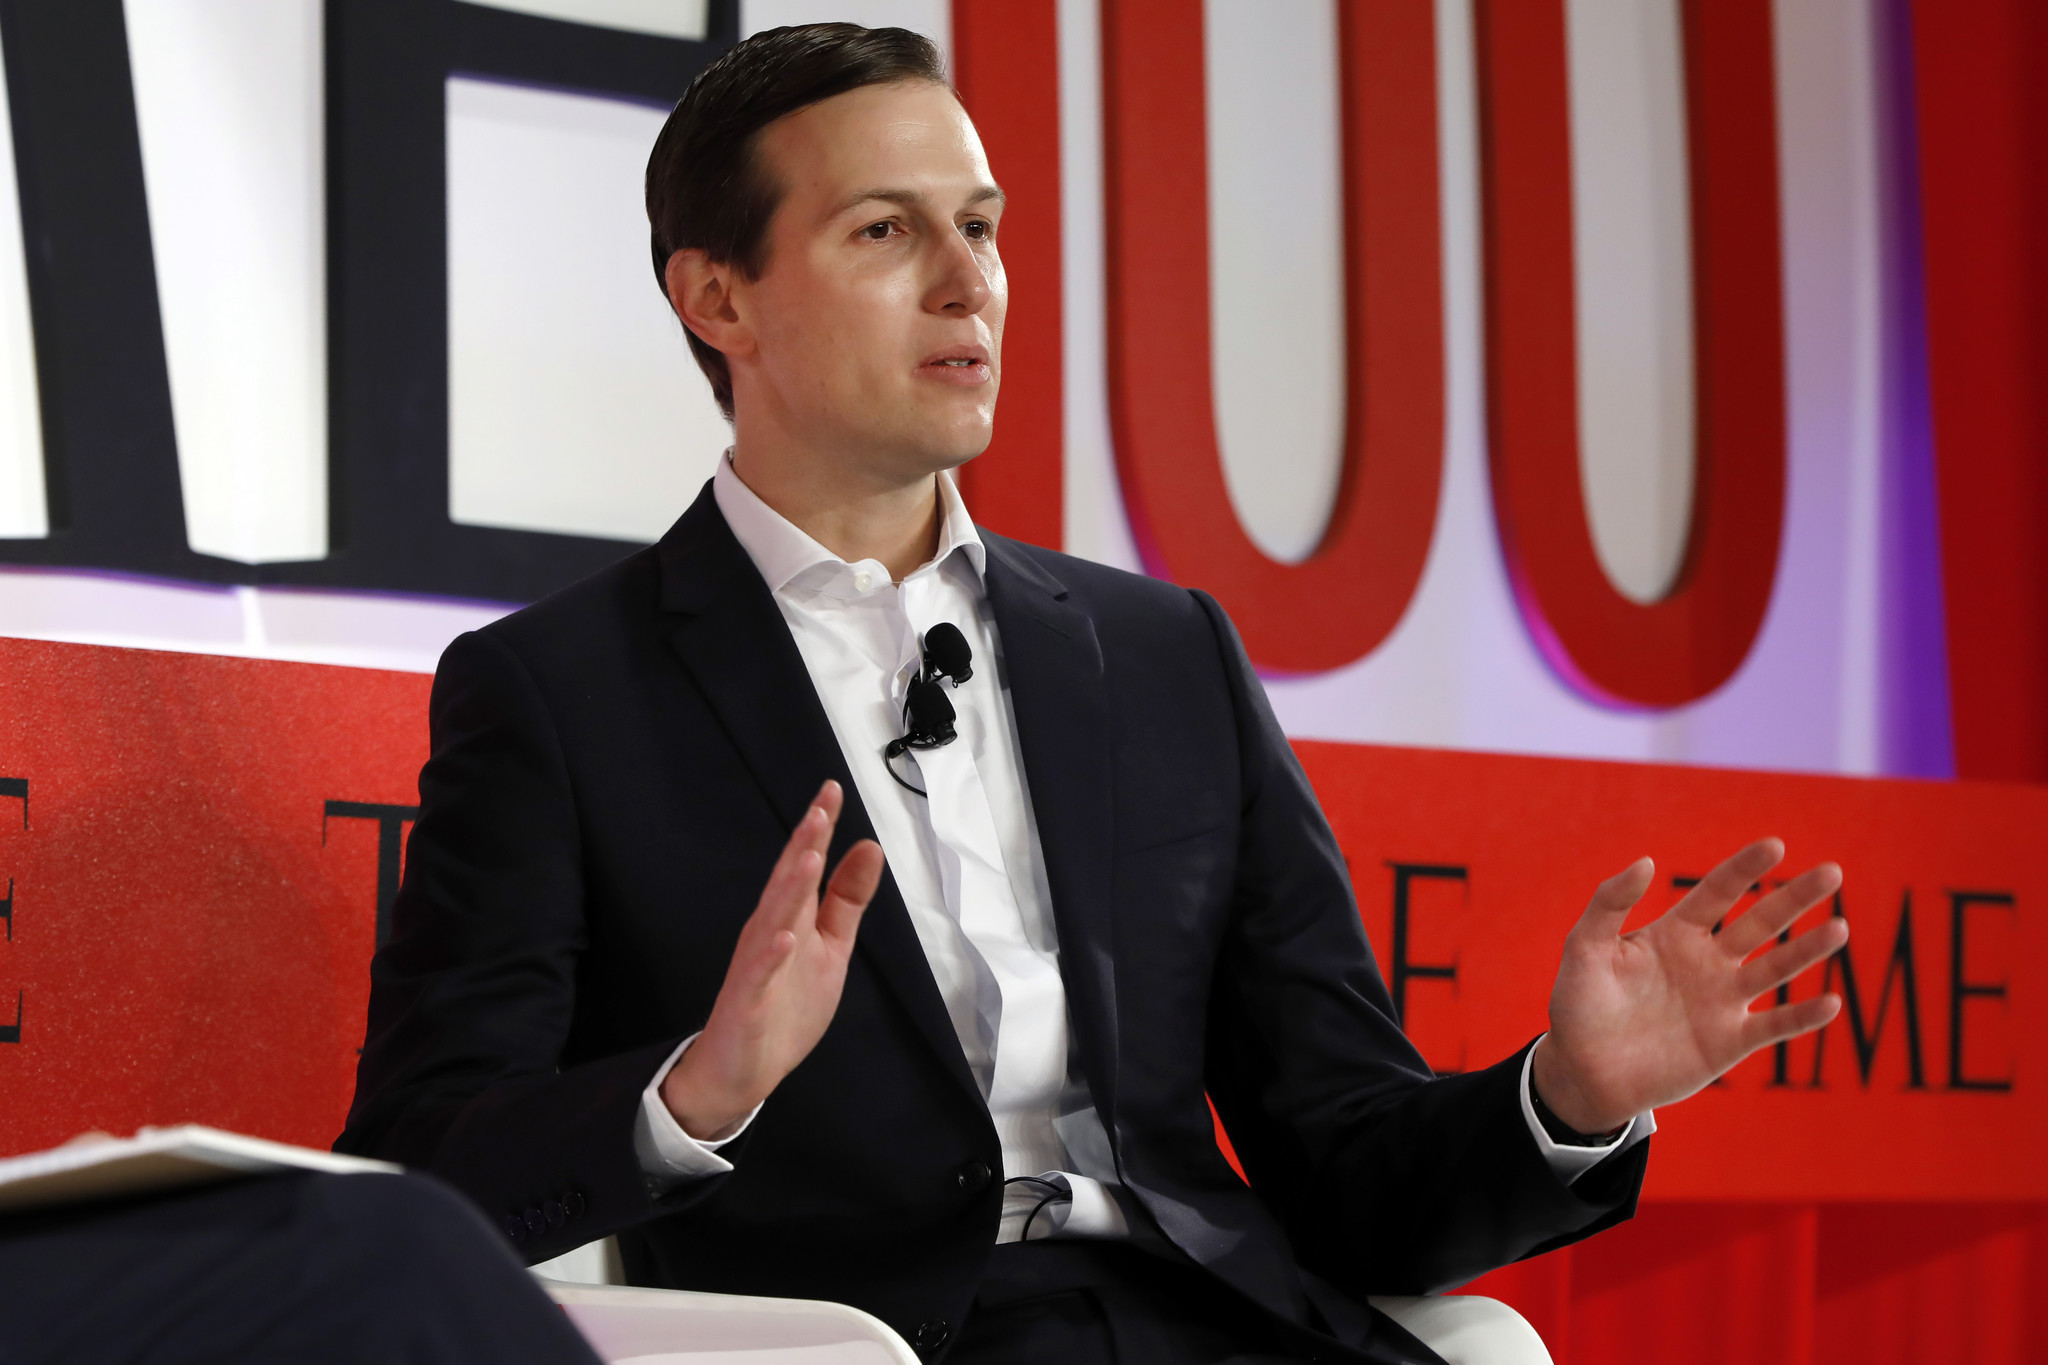 Jared Kushner plays down Russian interference as 'a couple Facebook ads.' Mueller says their involvement was 'sweeping and systematic.'